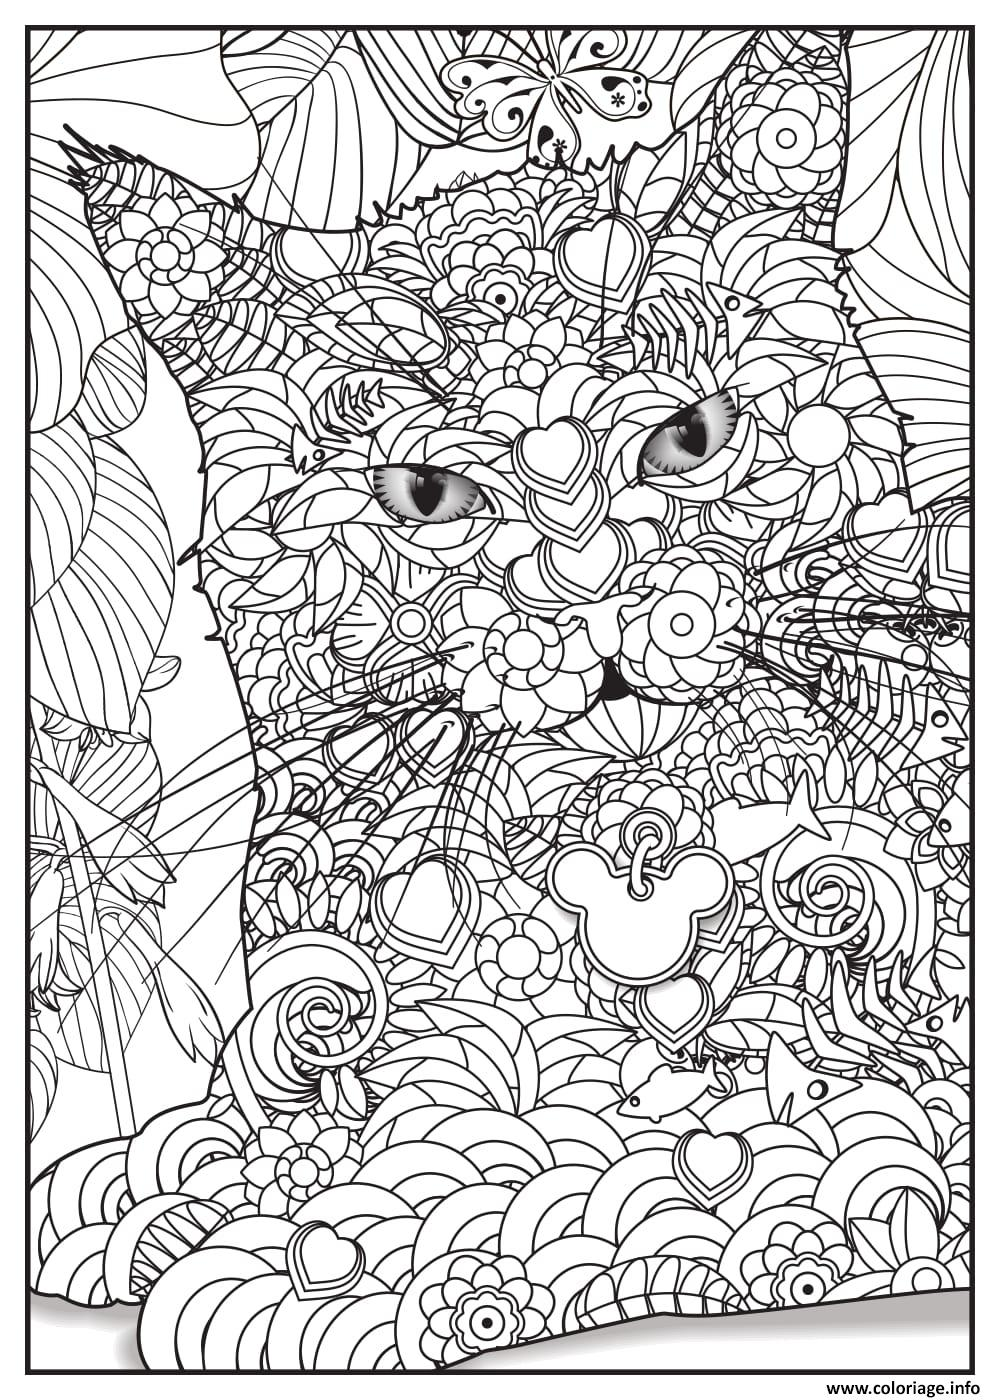 Coloriage Chat Maine Coon Adulte Animaux dessin